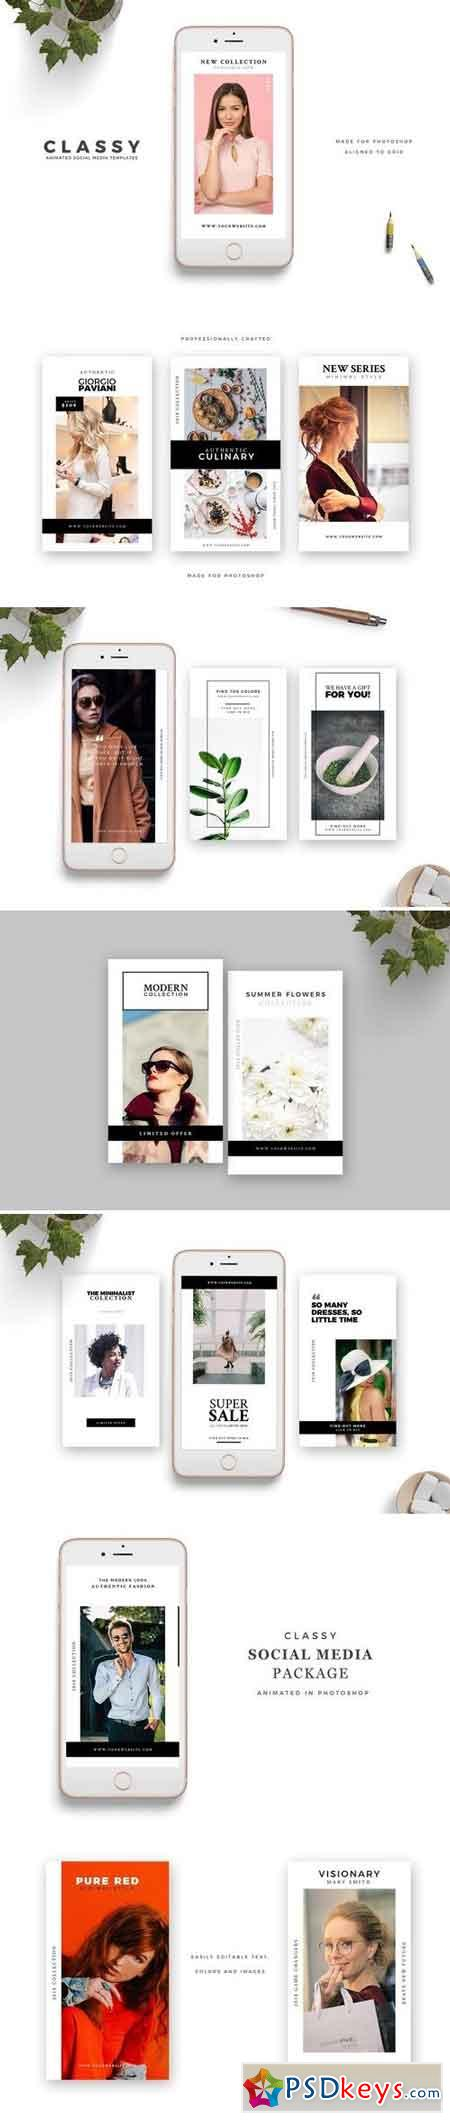 Animated Templates for Instagram 3150773